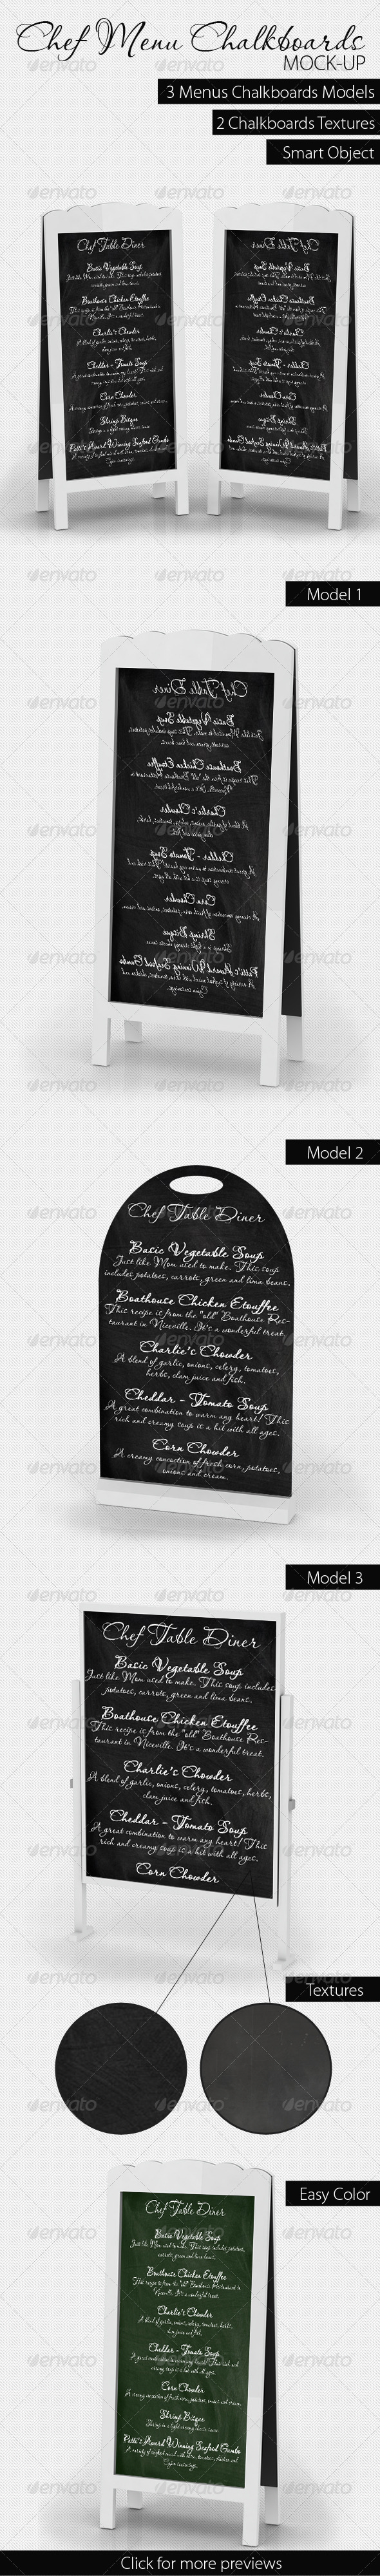 Chef Menu Chalkboards Mock-Up - Miscellaneous Displays